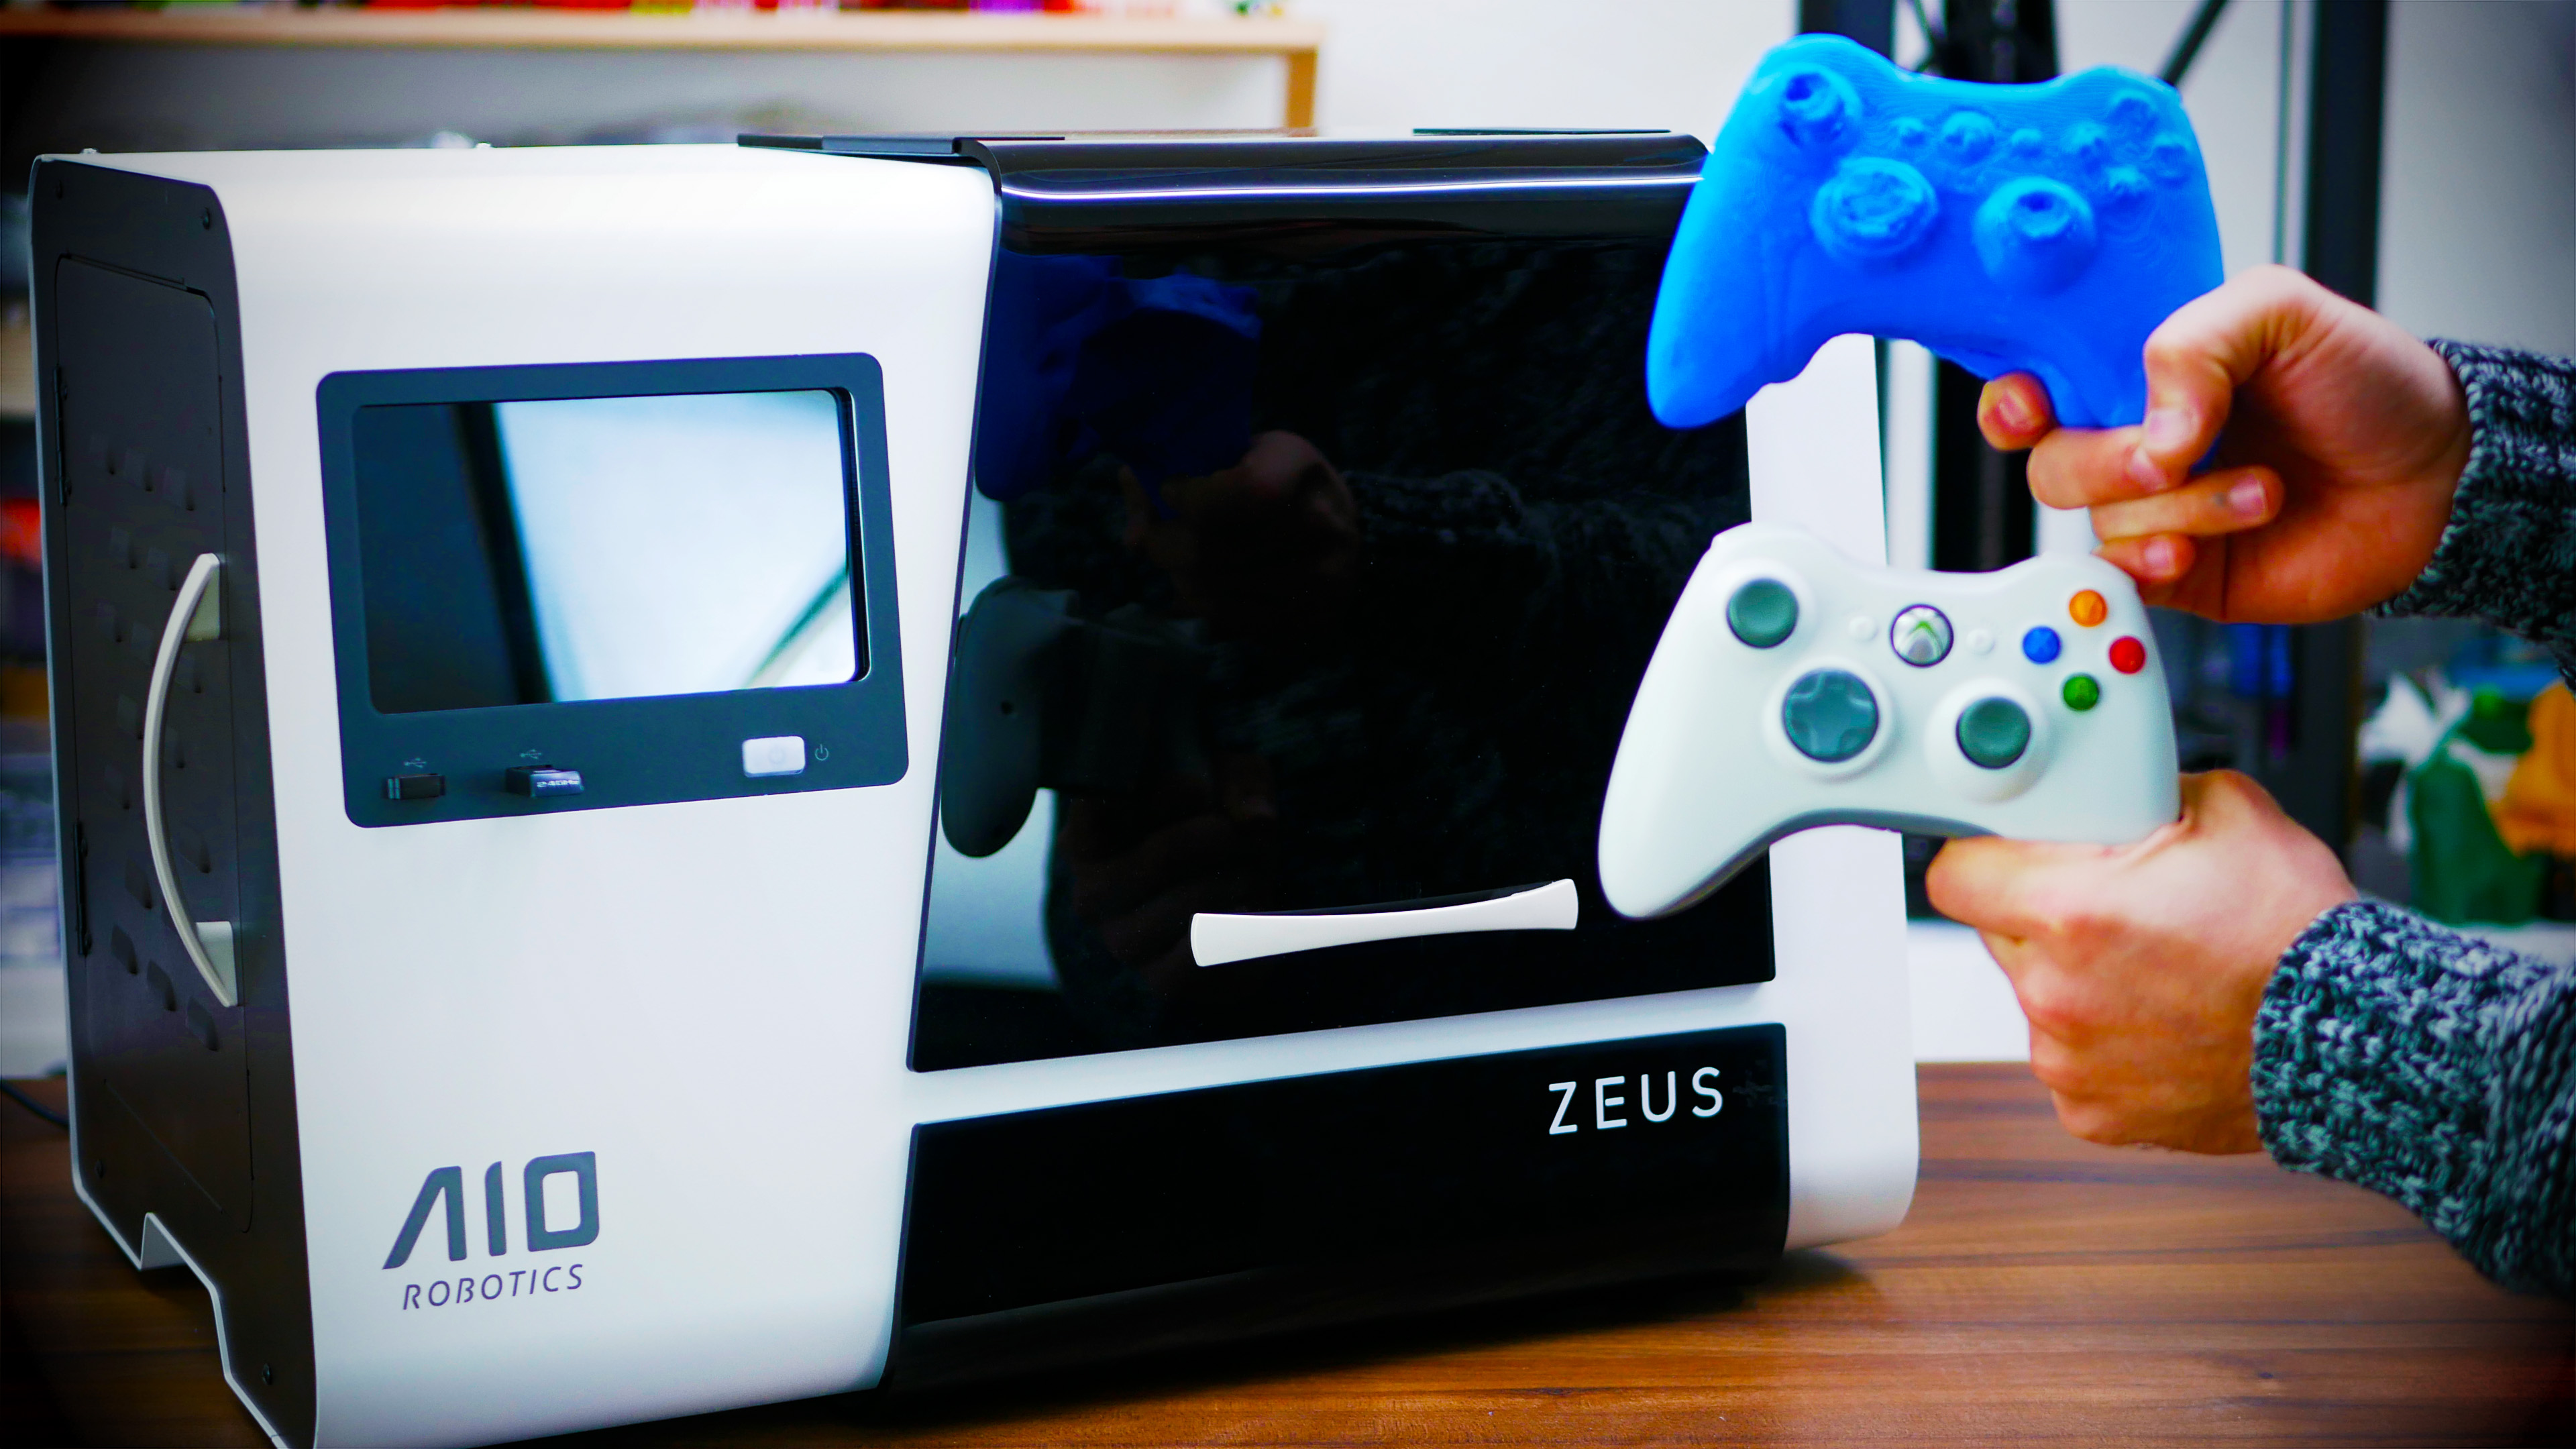 3d Scanner Printer And Copier Aio Robotics Zeus Review Toms